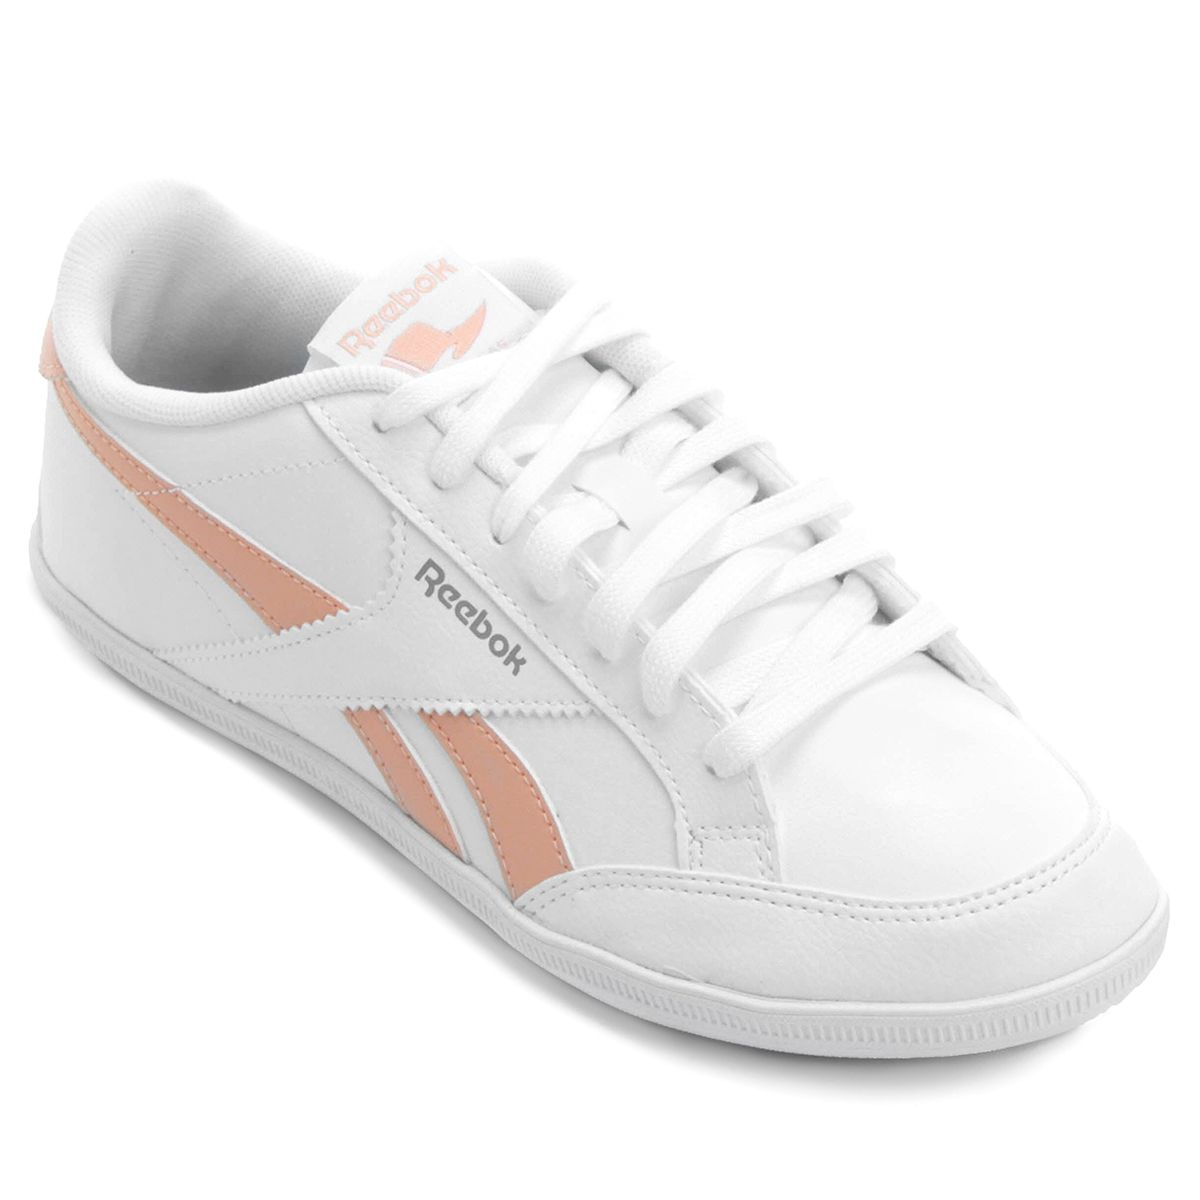 03200879078c7 Tênis Reebok Royal Transport S - branco/salmão | jogging odde ...